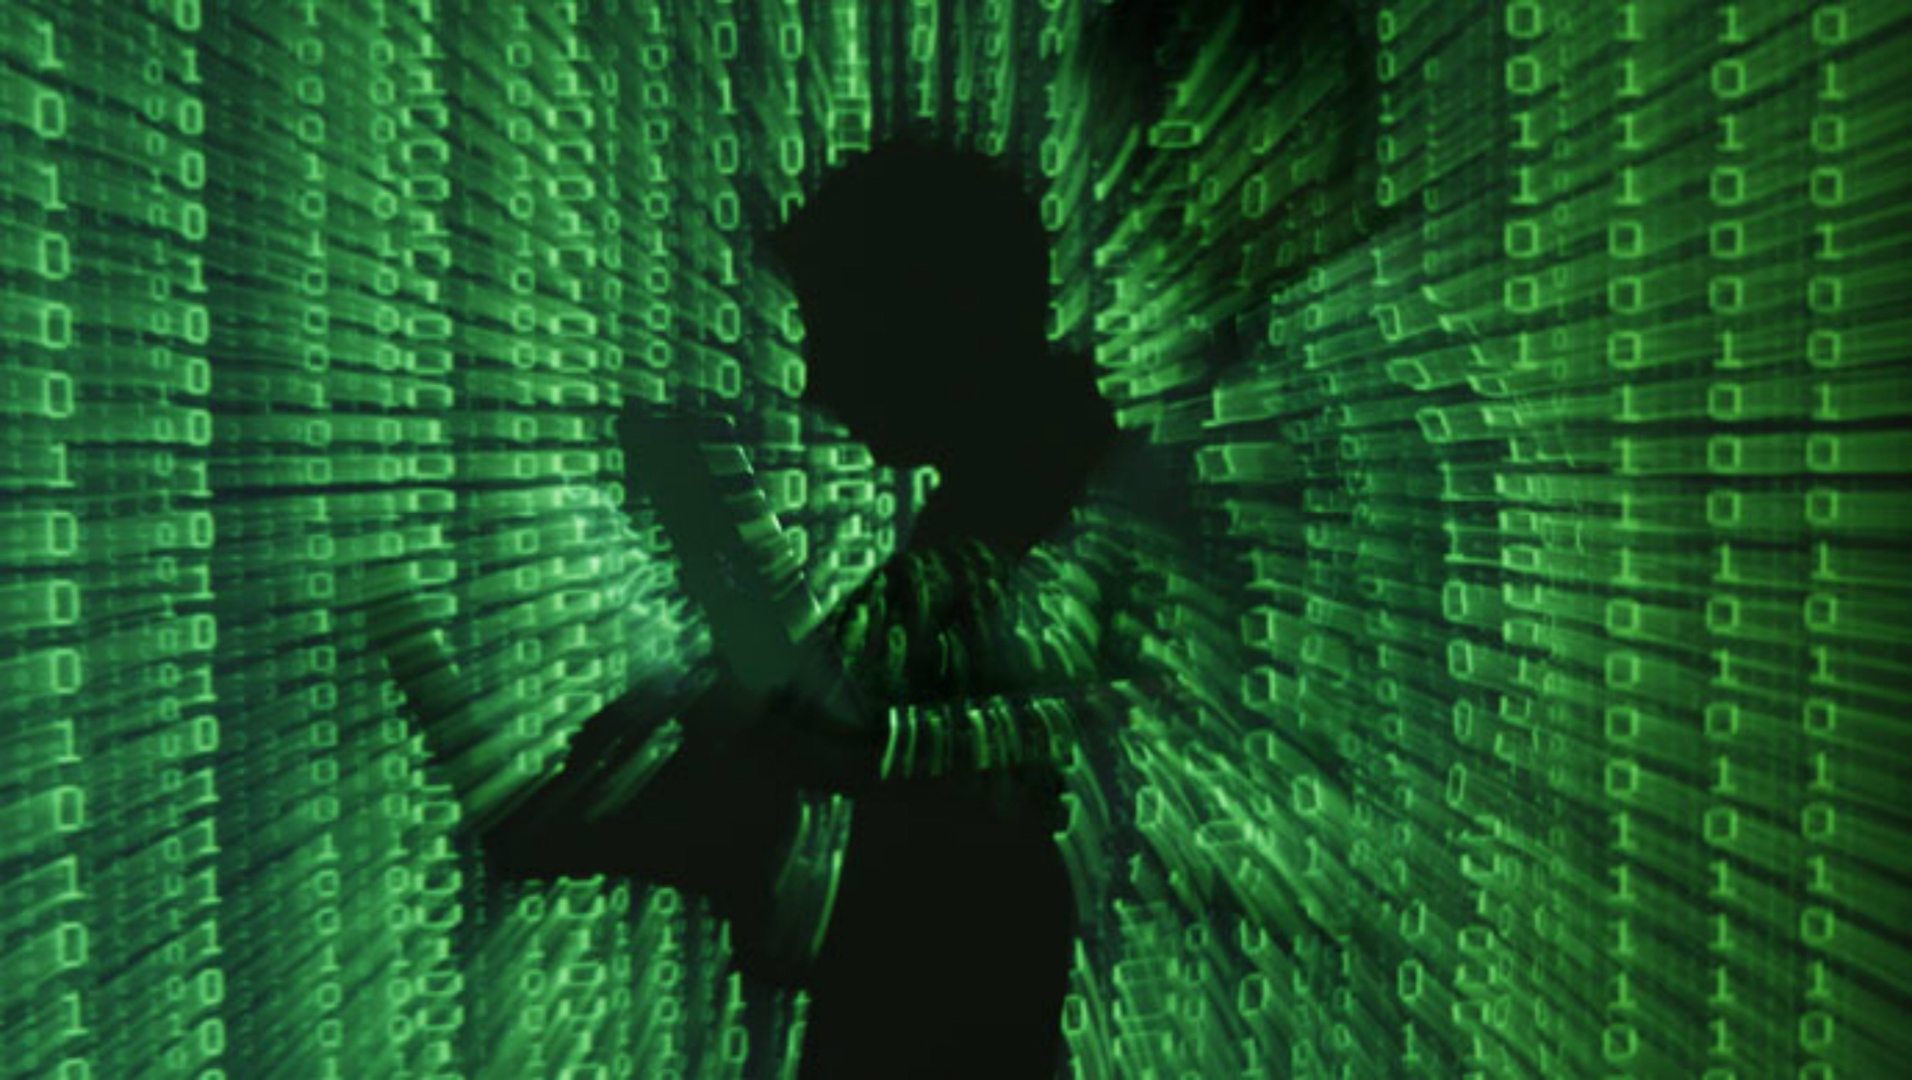 The End of Encryption? NSA & FBI Seek New Backdoors Against Advice from Leading Security Experts